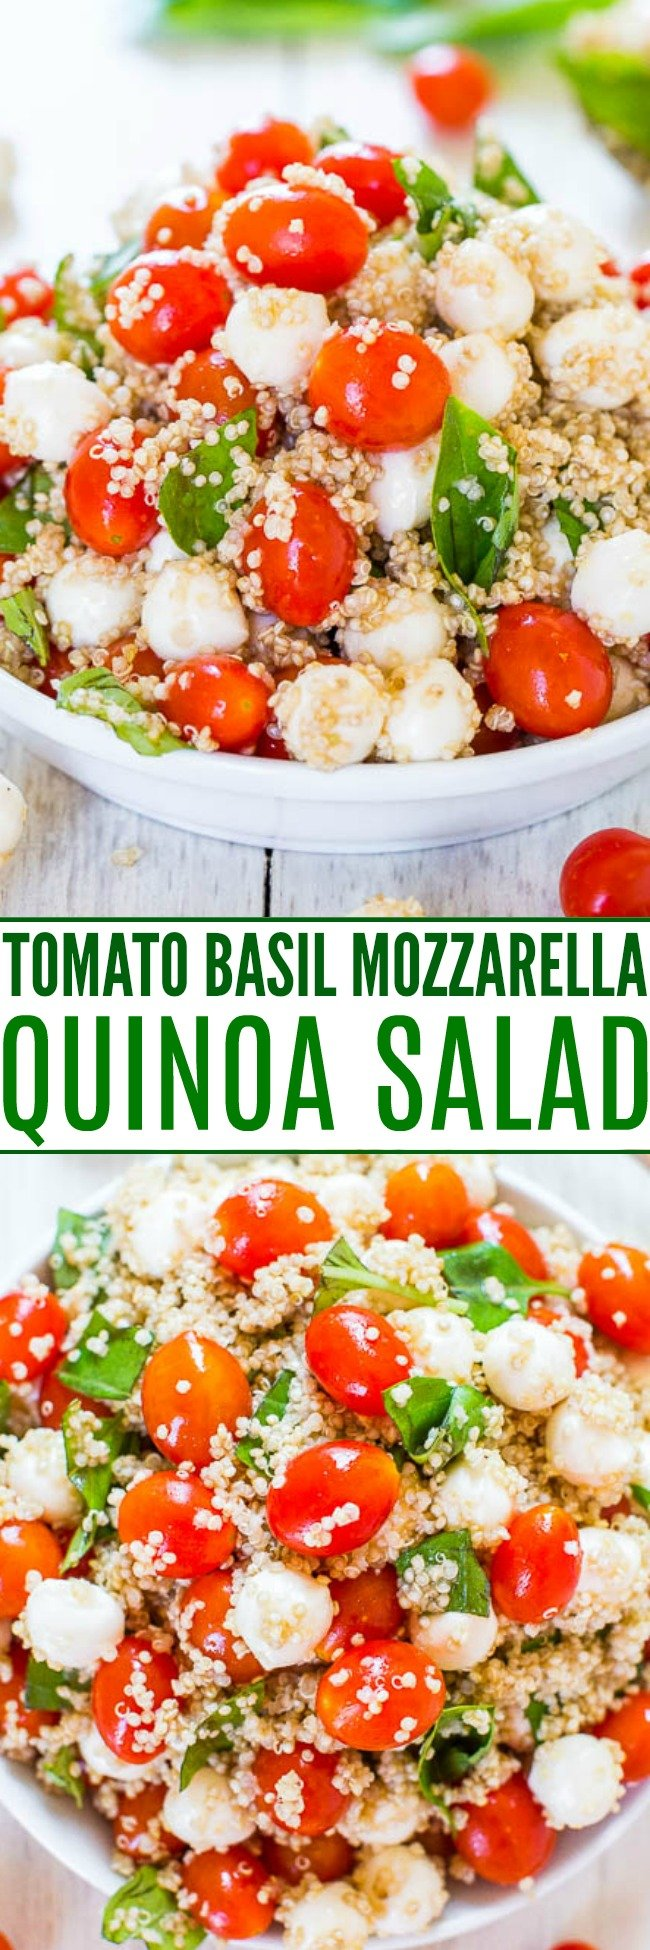 Tomato Mozzarella Salad with Basil and Quinoa — This cold quinoa salad is packed with fresh Italian flavors. You can easily mix and match the ingredients to use up any fresh produce you have on hand.